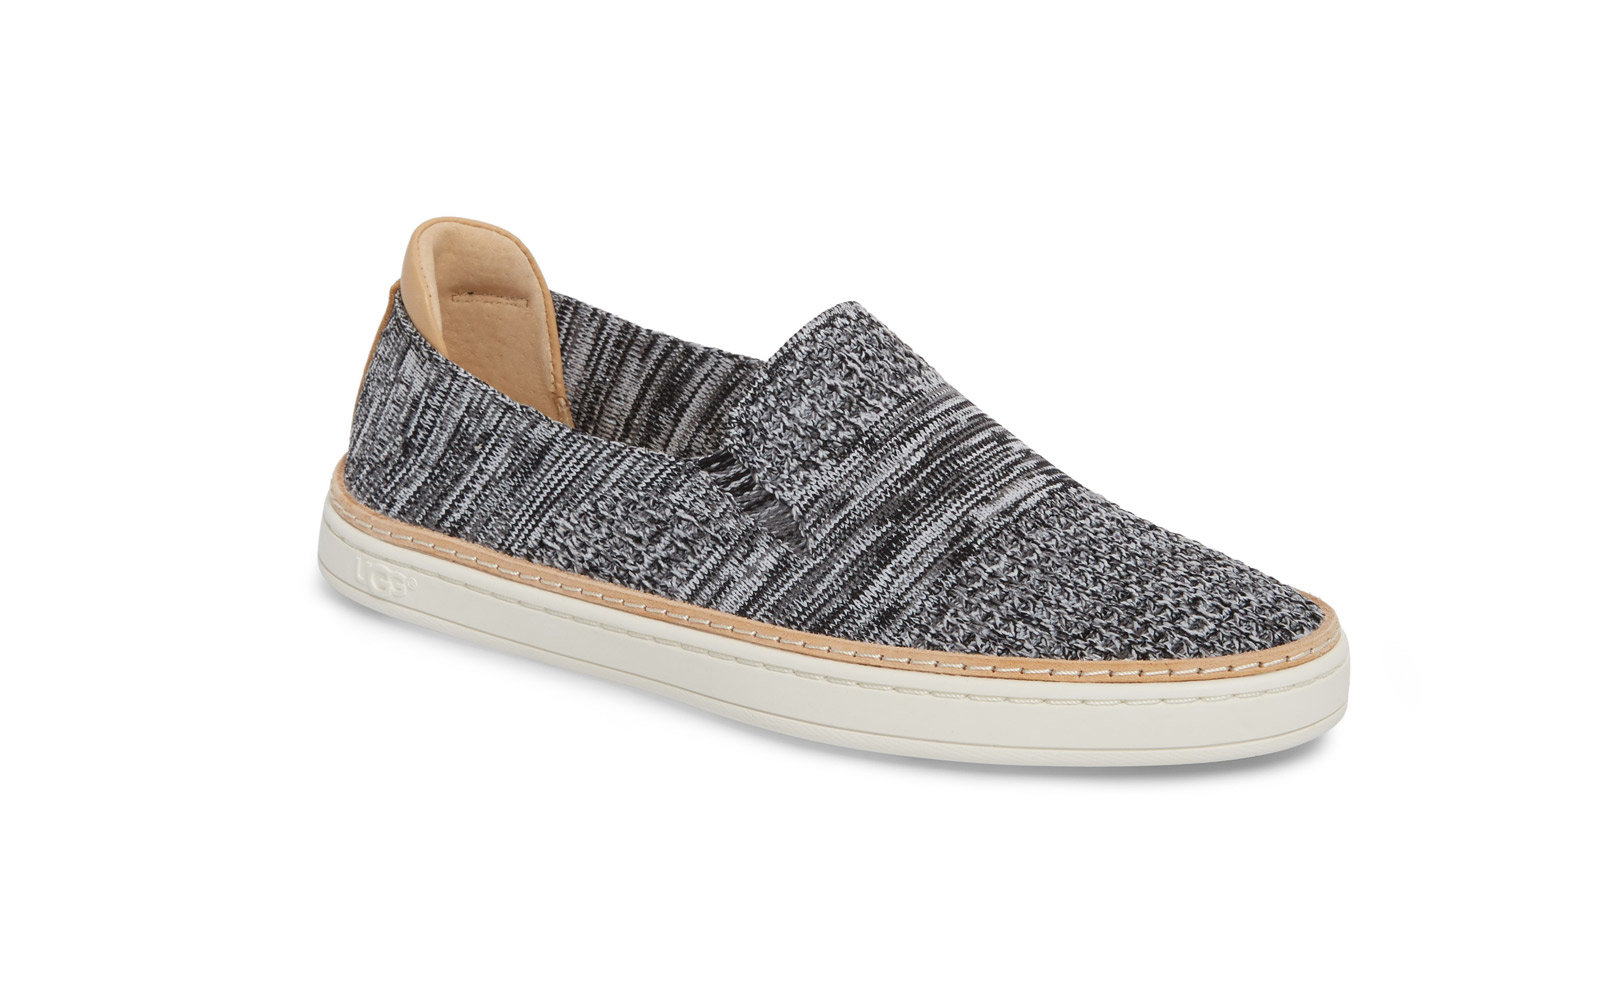 Most Comfy Slip On Shoes